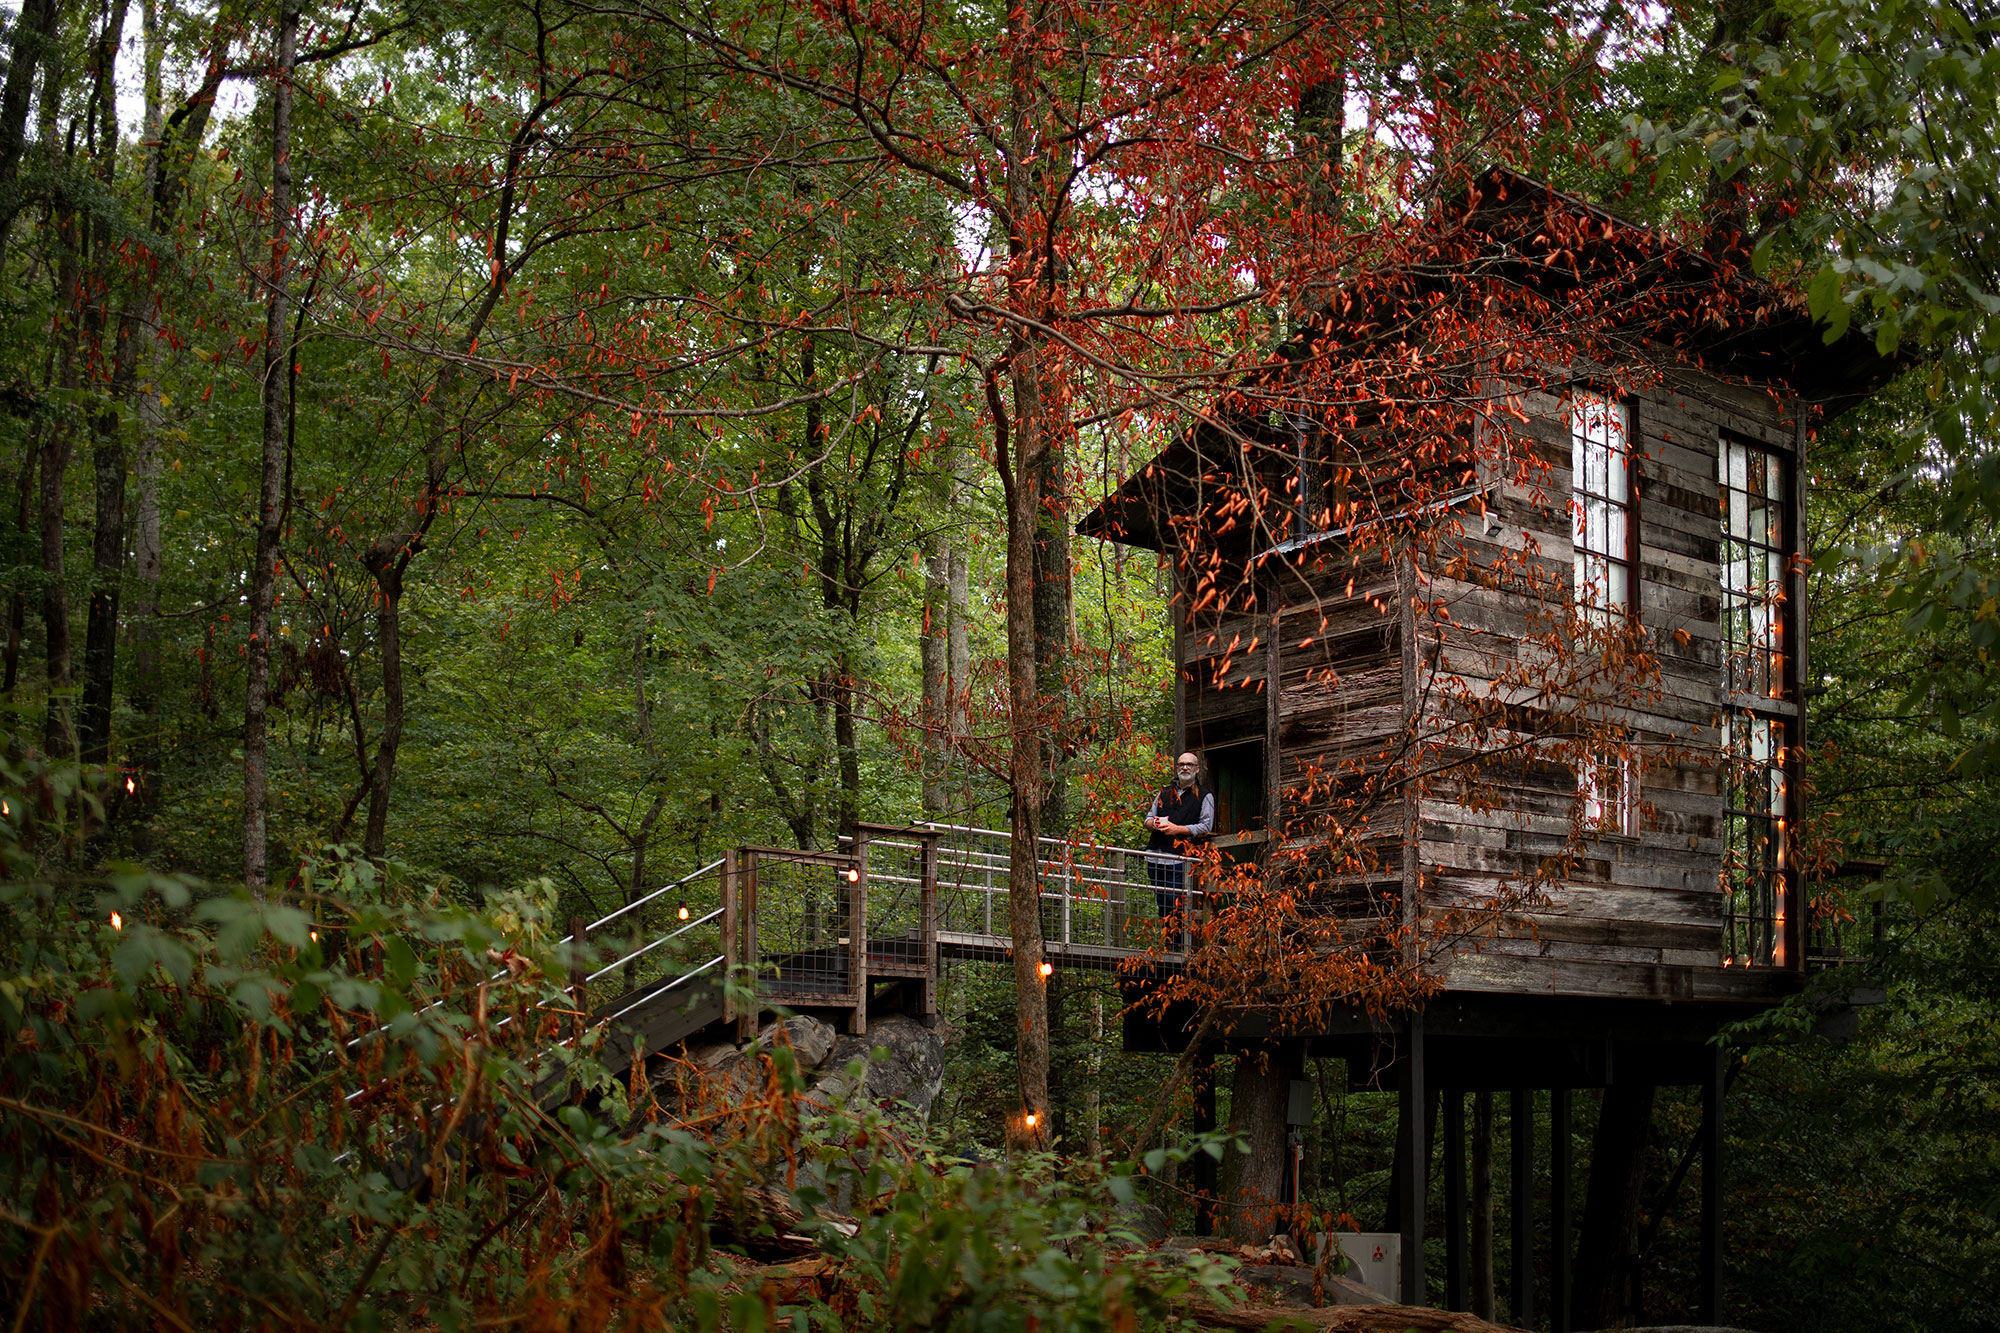 Treehouse in Flintstone, Georgia. Photo by Ben Galland